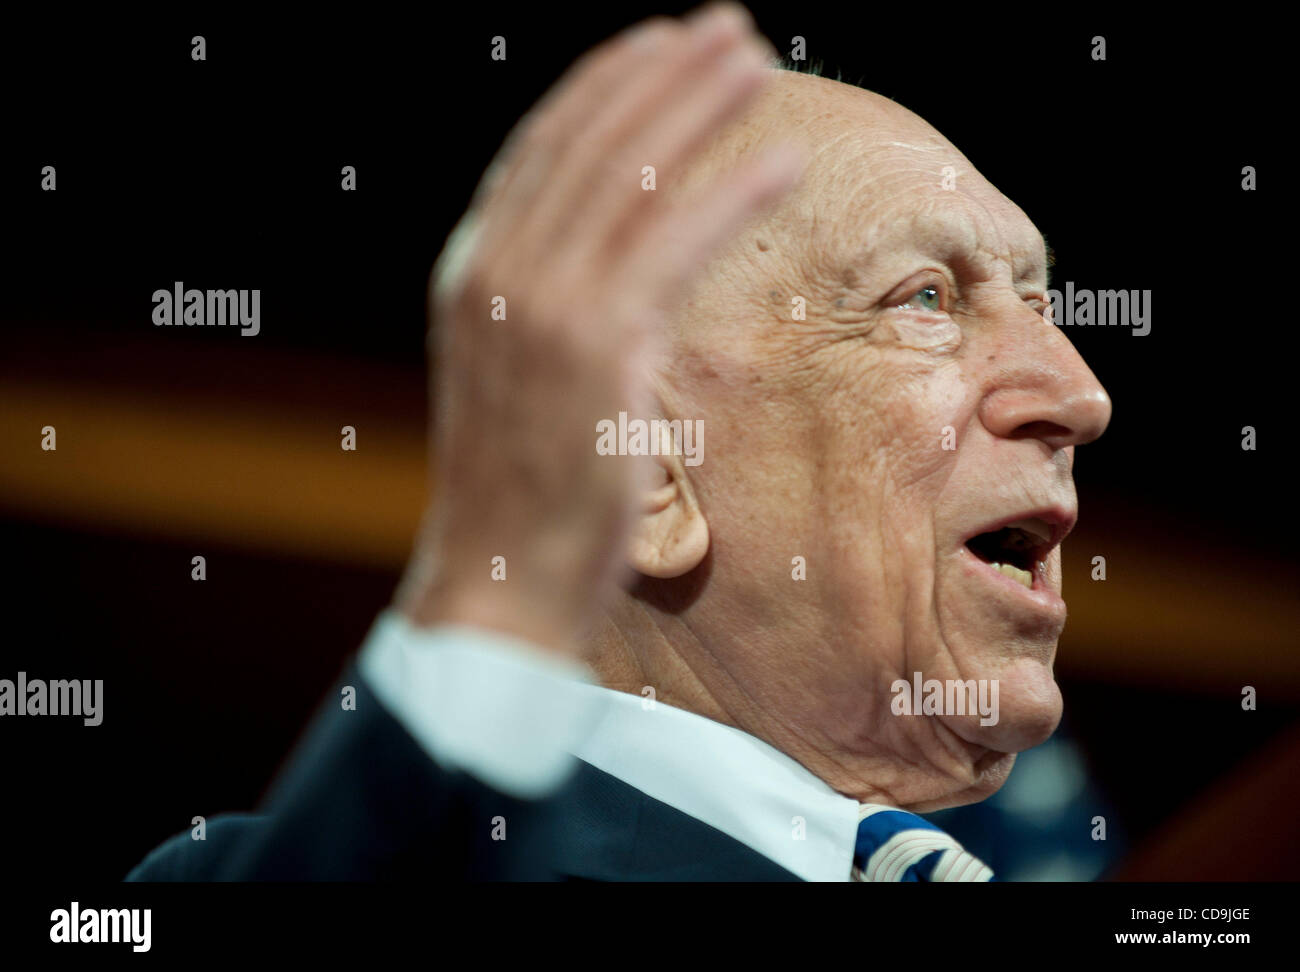 Jul 14, 2010 - Washington, District of Columbia, U.S., -  Senator Frank Lautenberg speaks to the press urging the - Stock Image